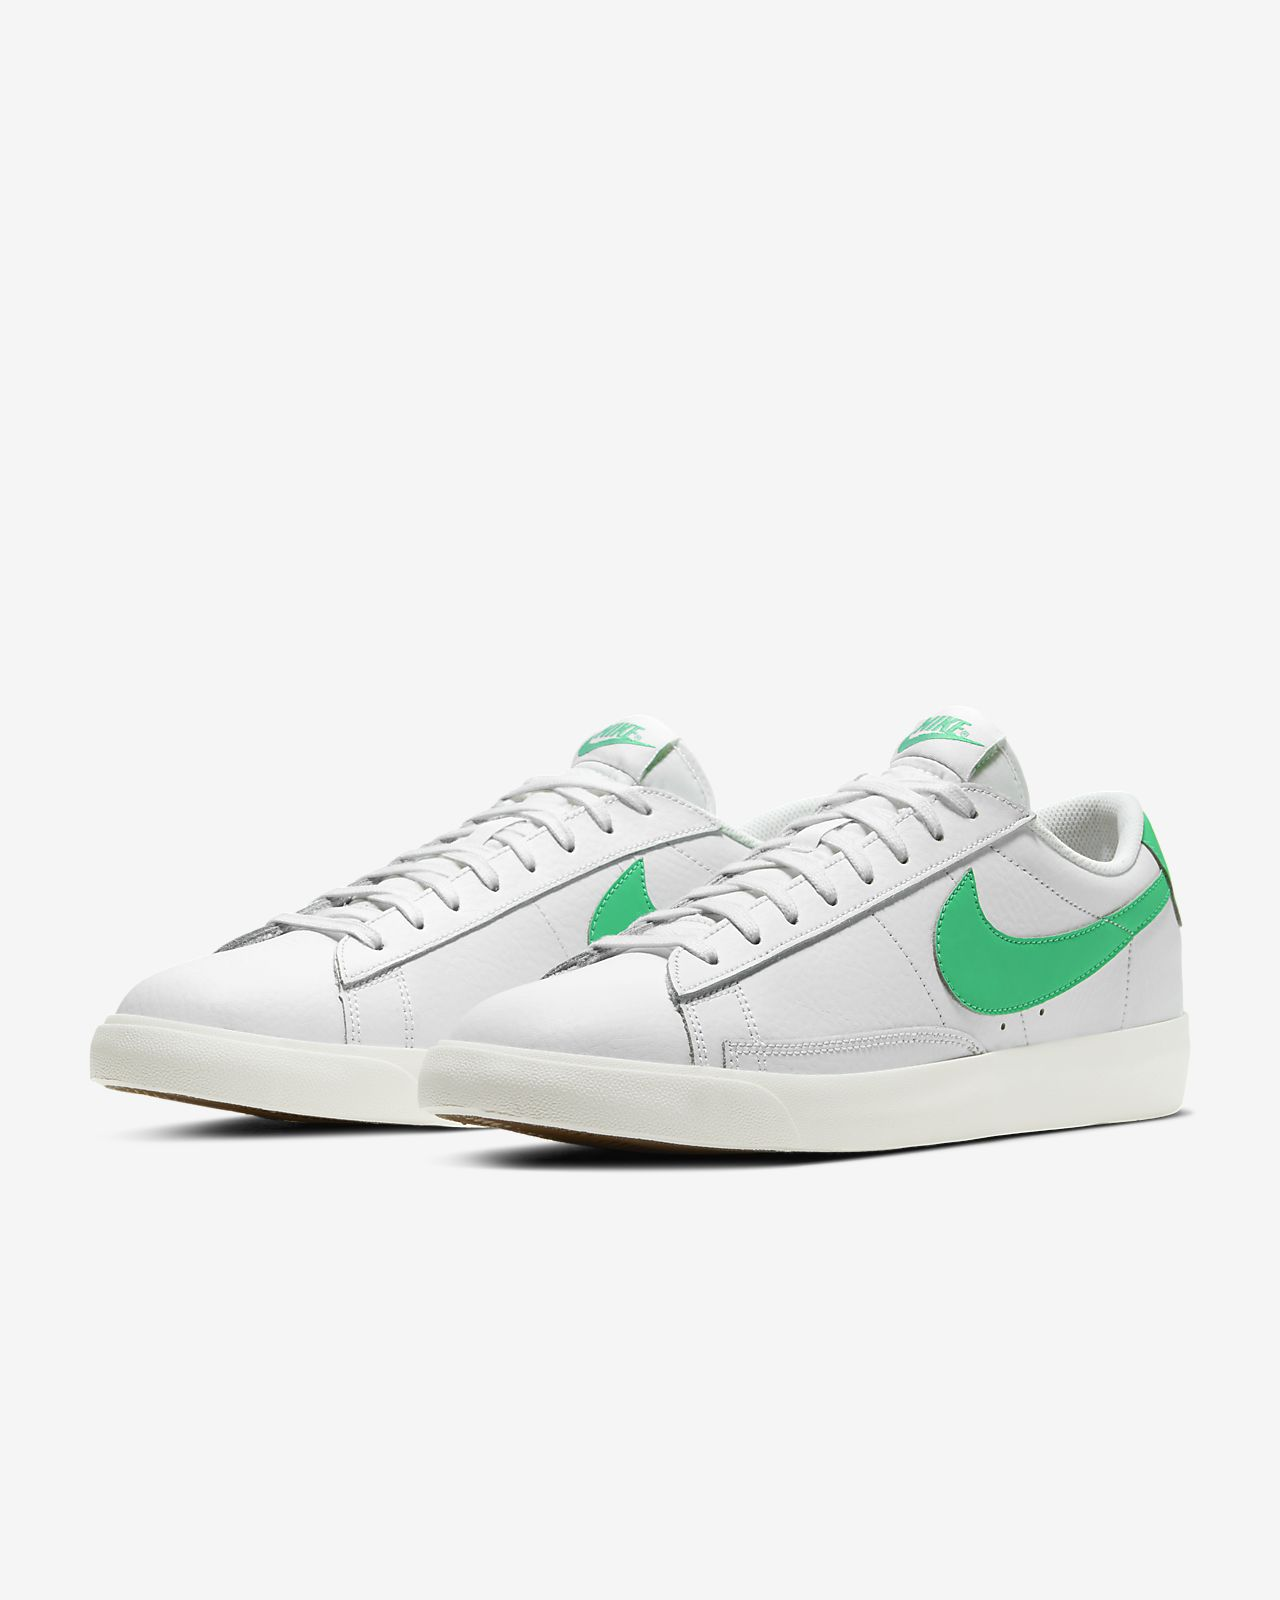 Sko Nike Blazer Low Leather för män